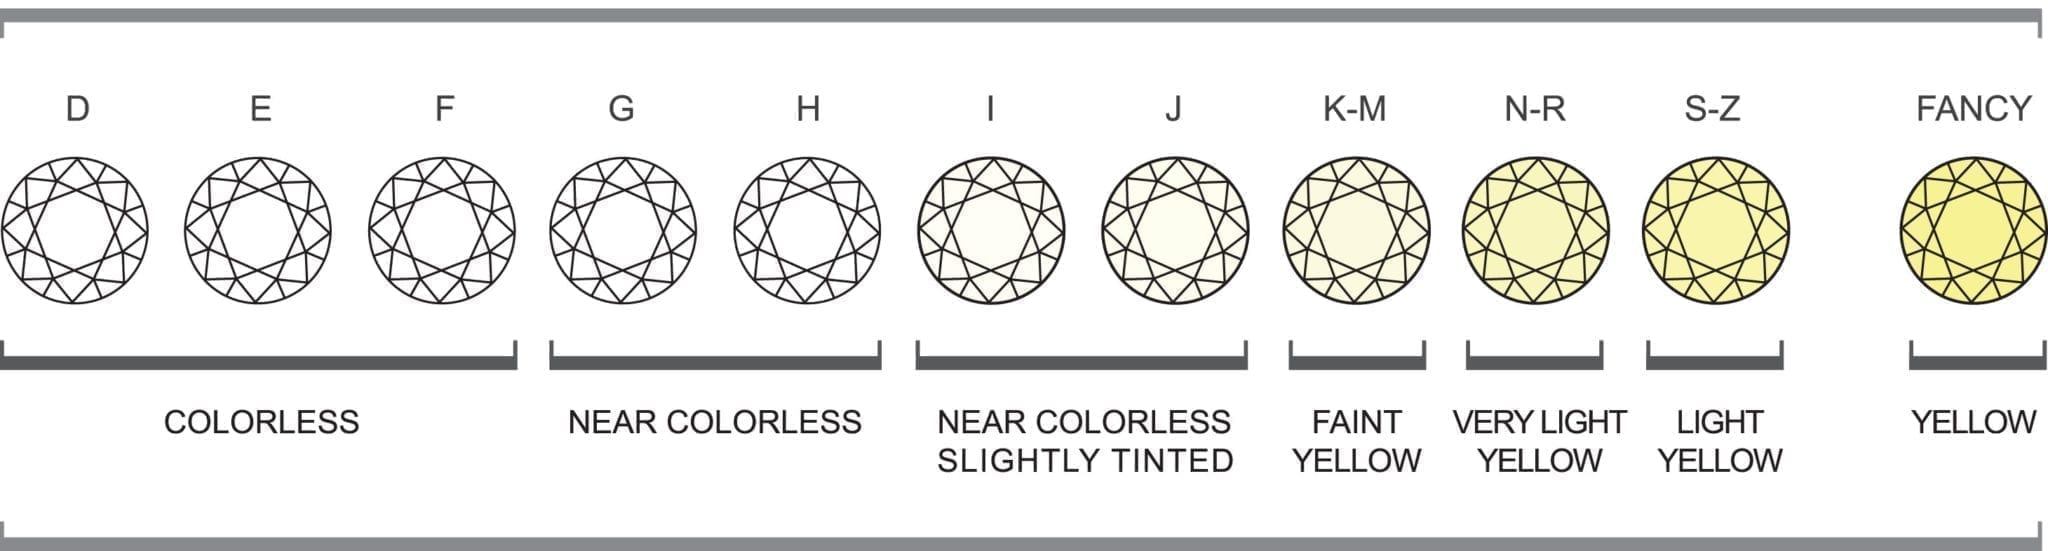 laser the diamond c is used in of s source methods are fracture diamonds enhance four grade to clarity process two purity a which filling and drilling